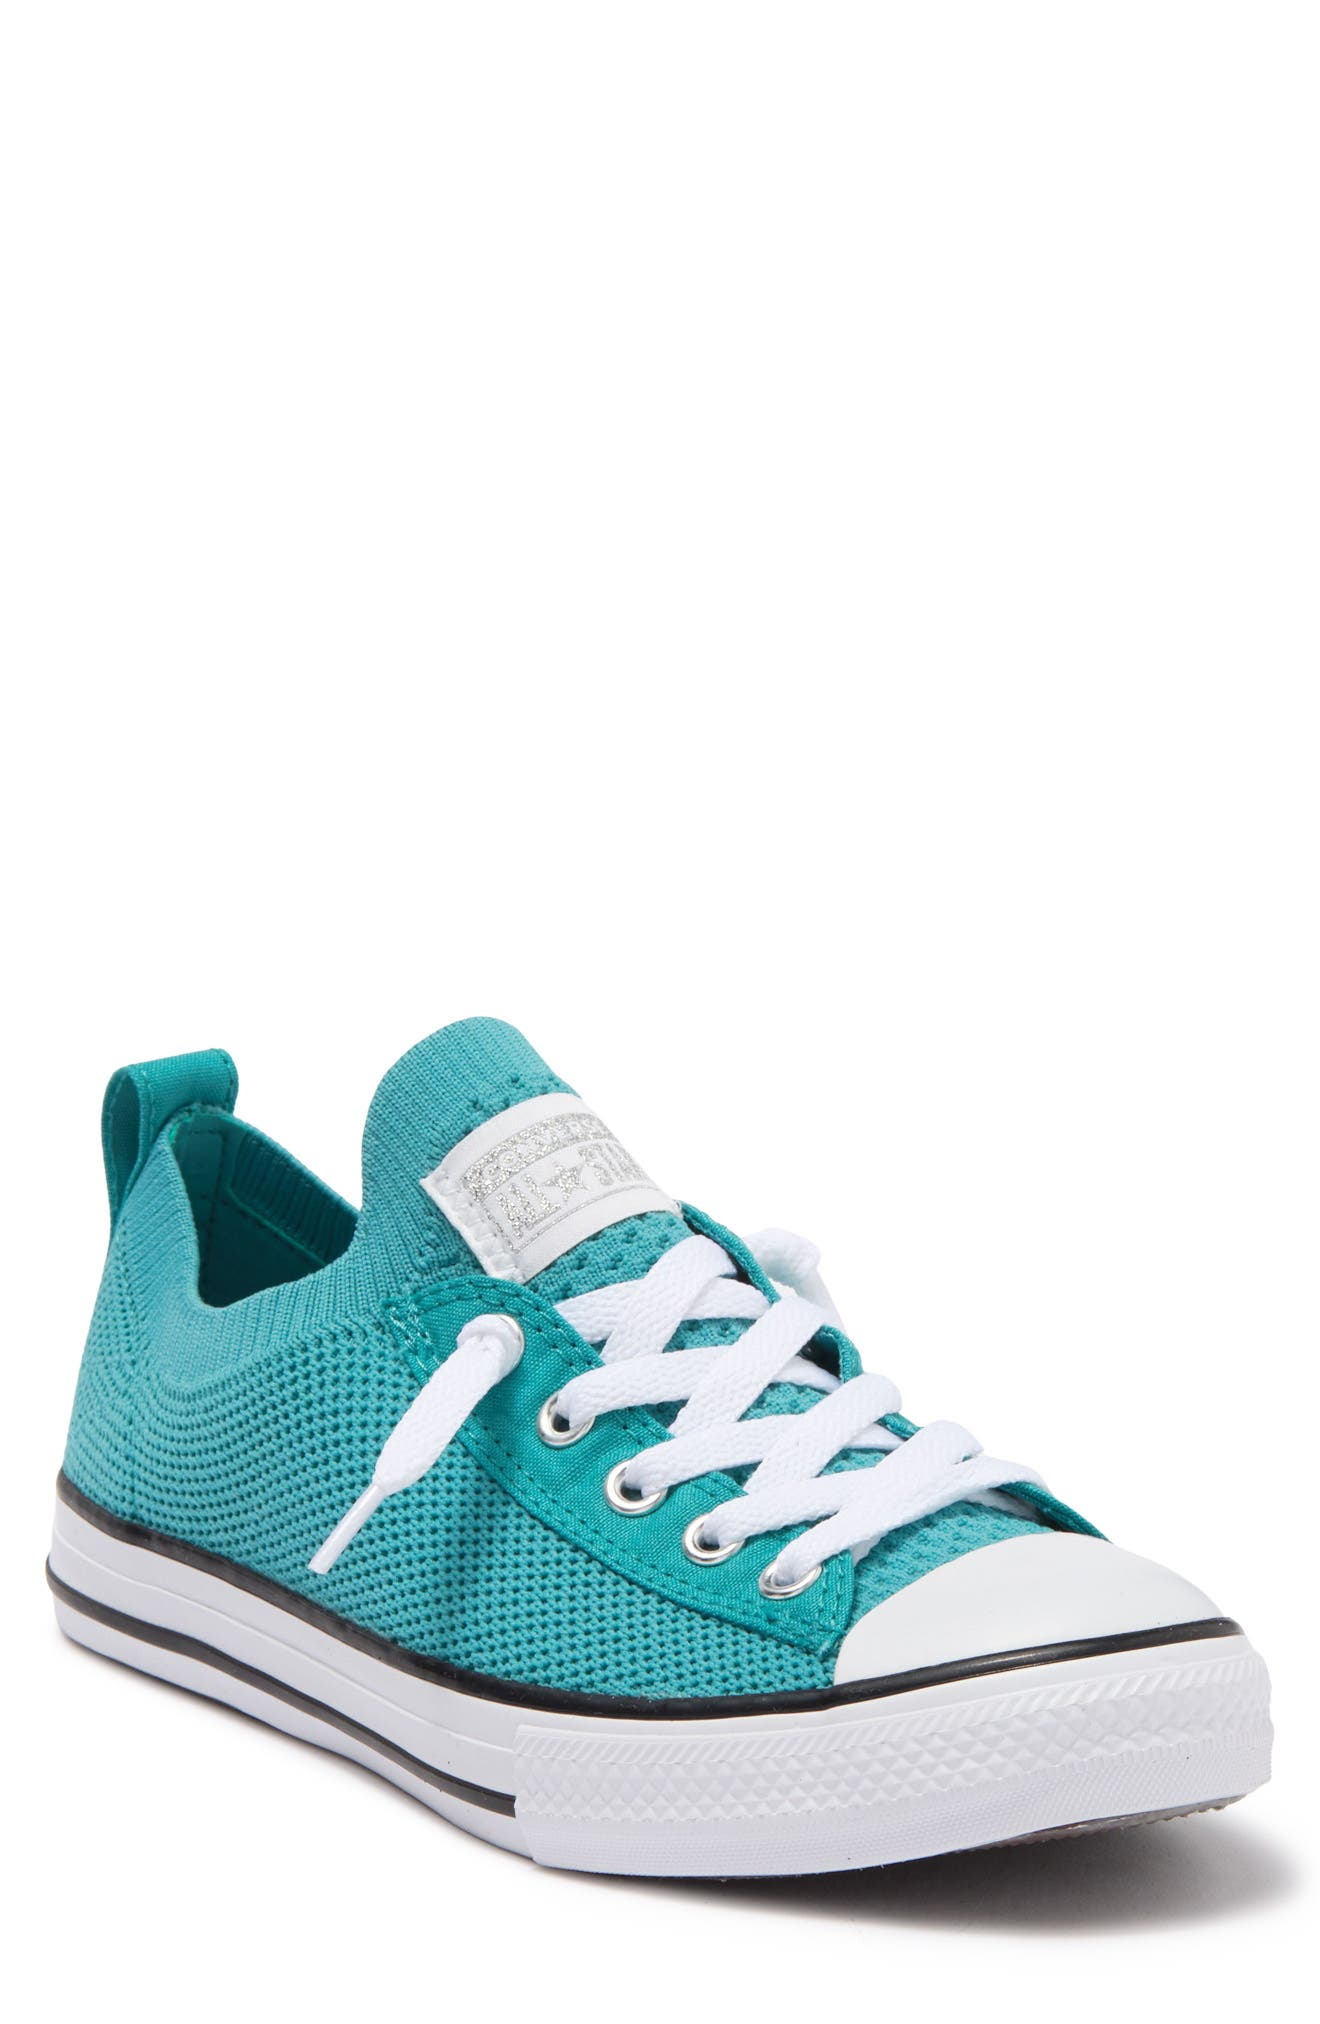 Converse Kids' Chuck Taylor All Stars Knit Slip-on Sneaker In Harbor Teal/whi